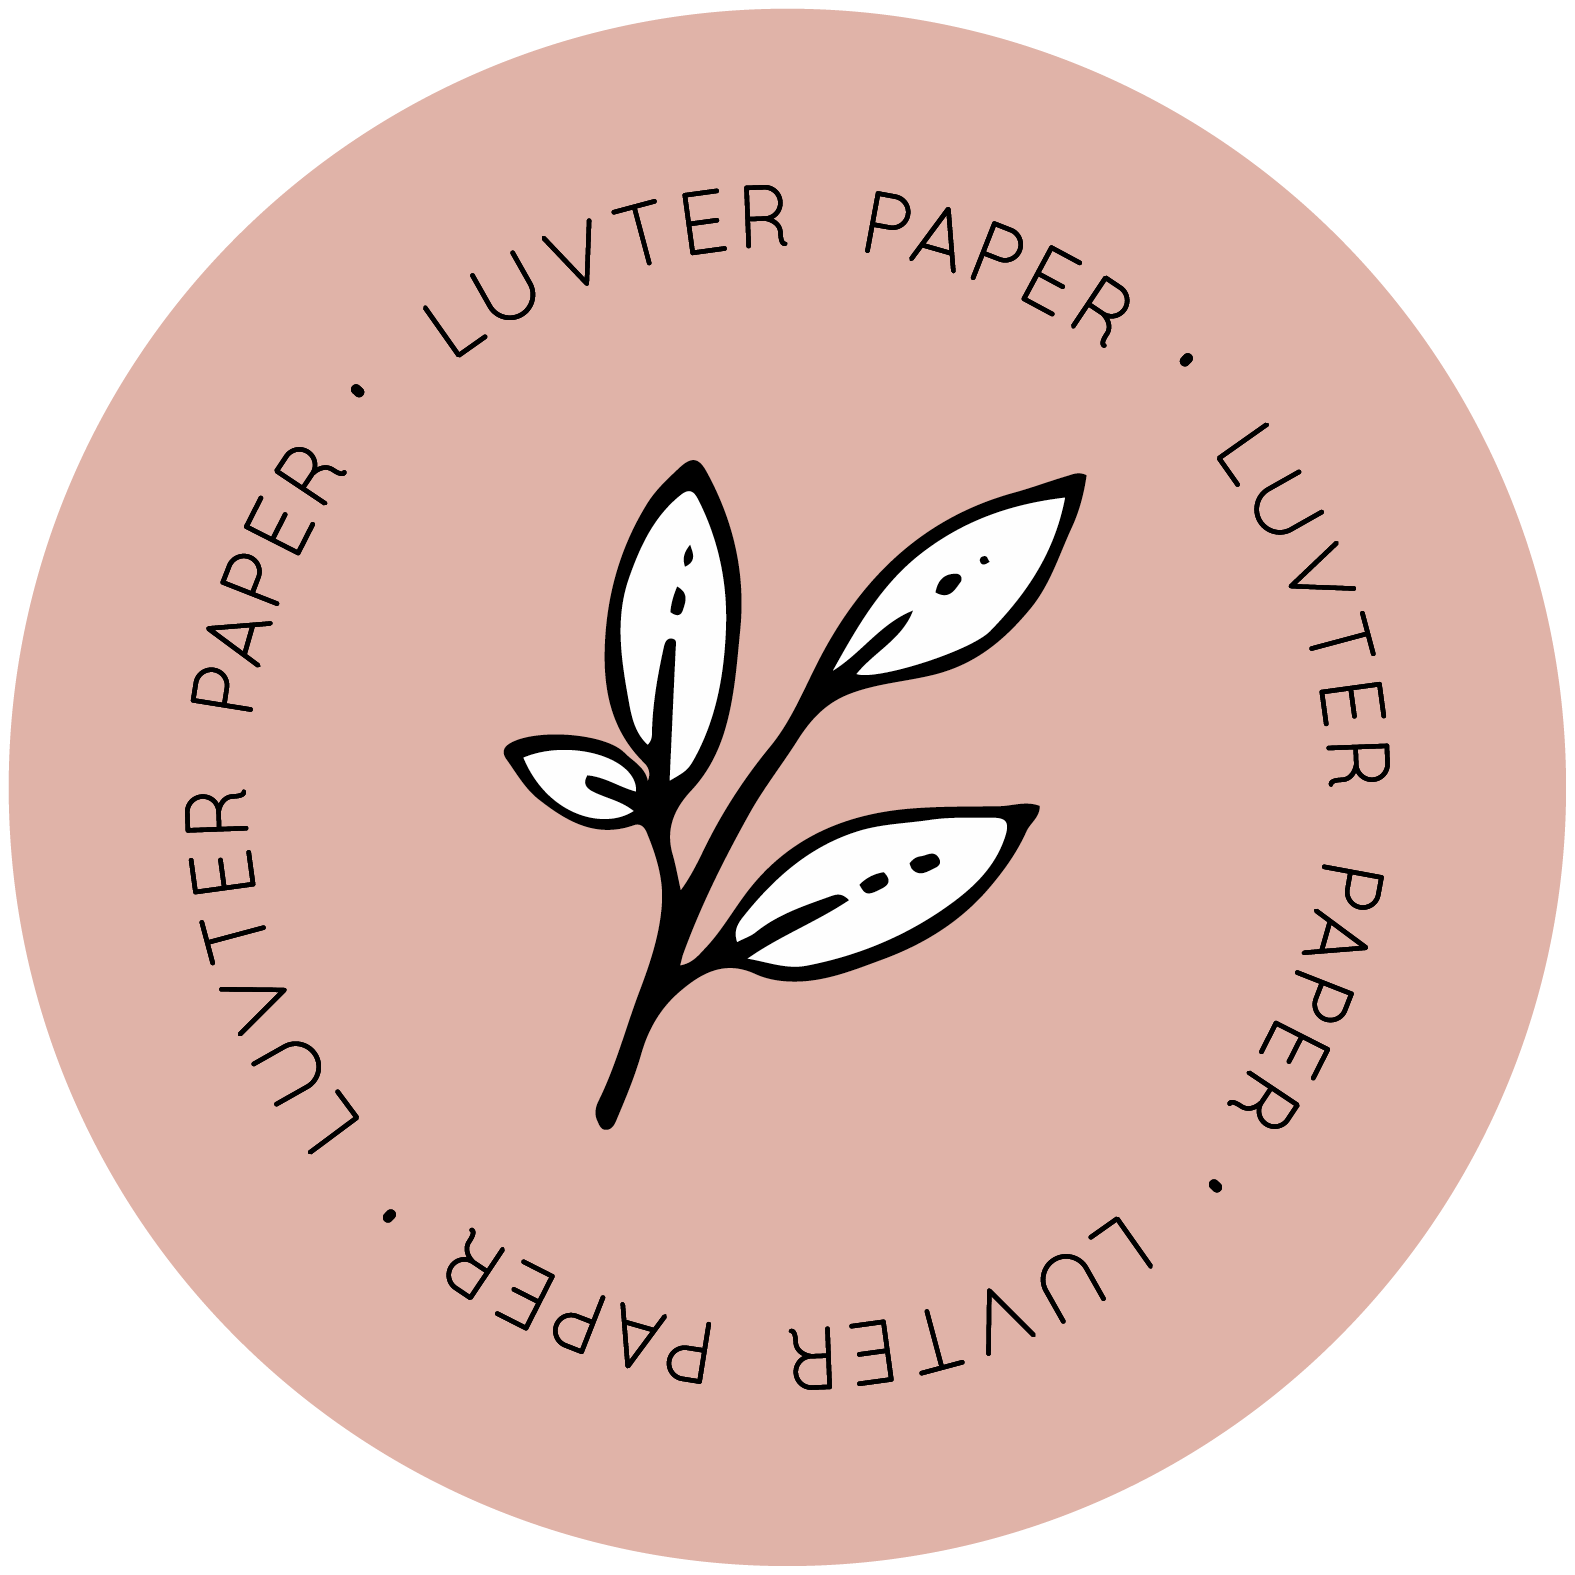 luvter paper